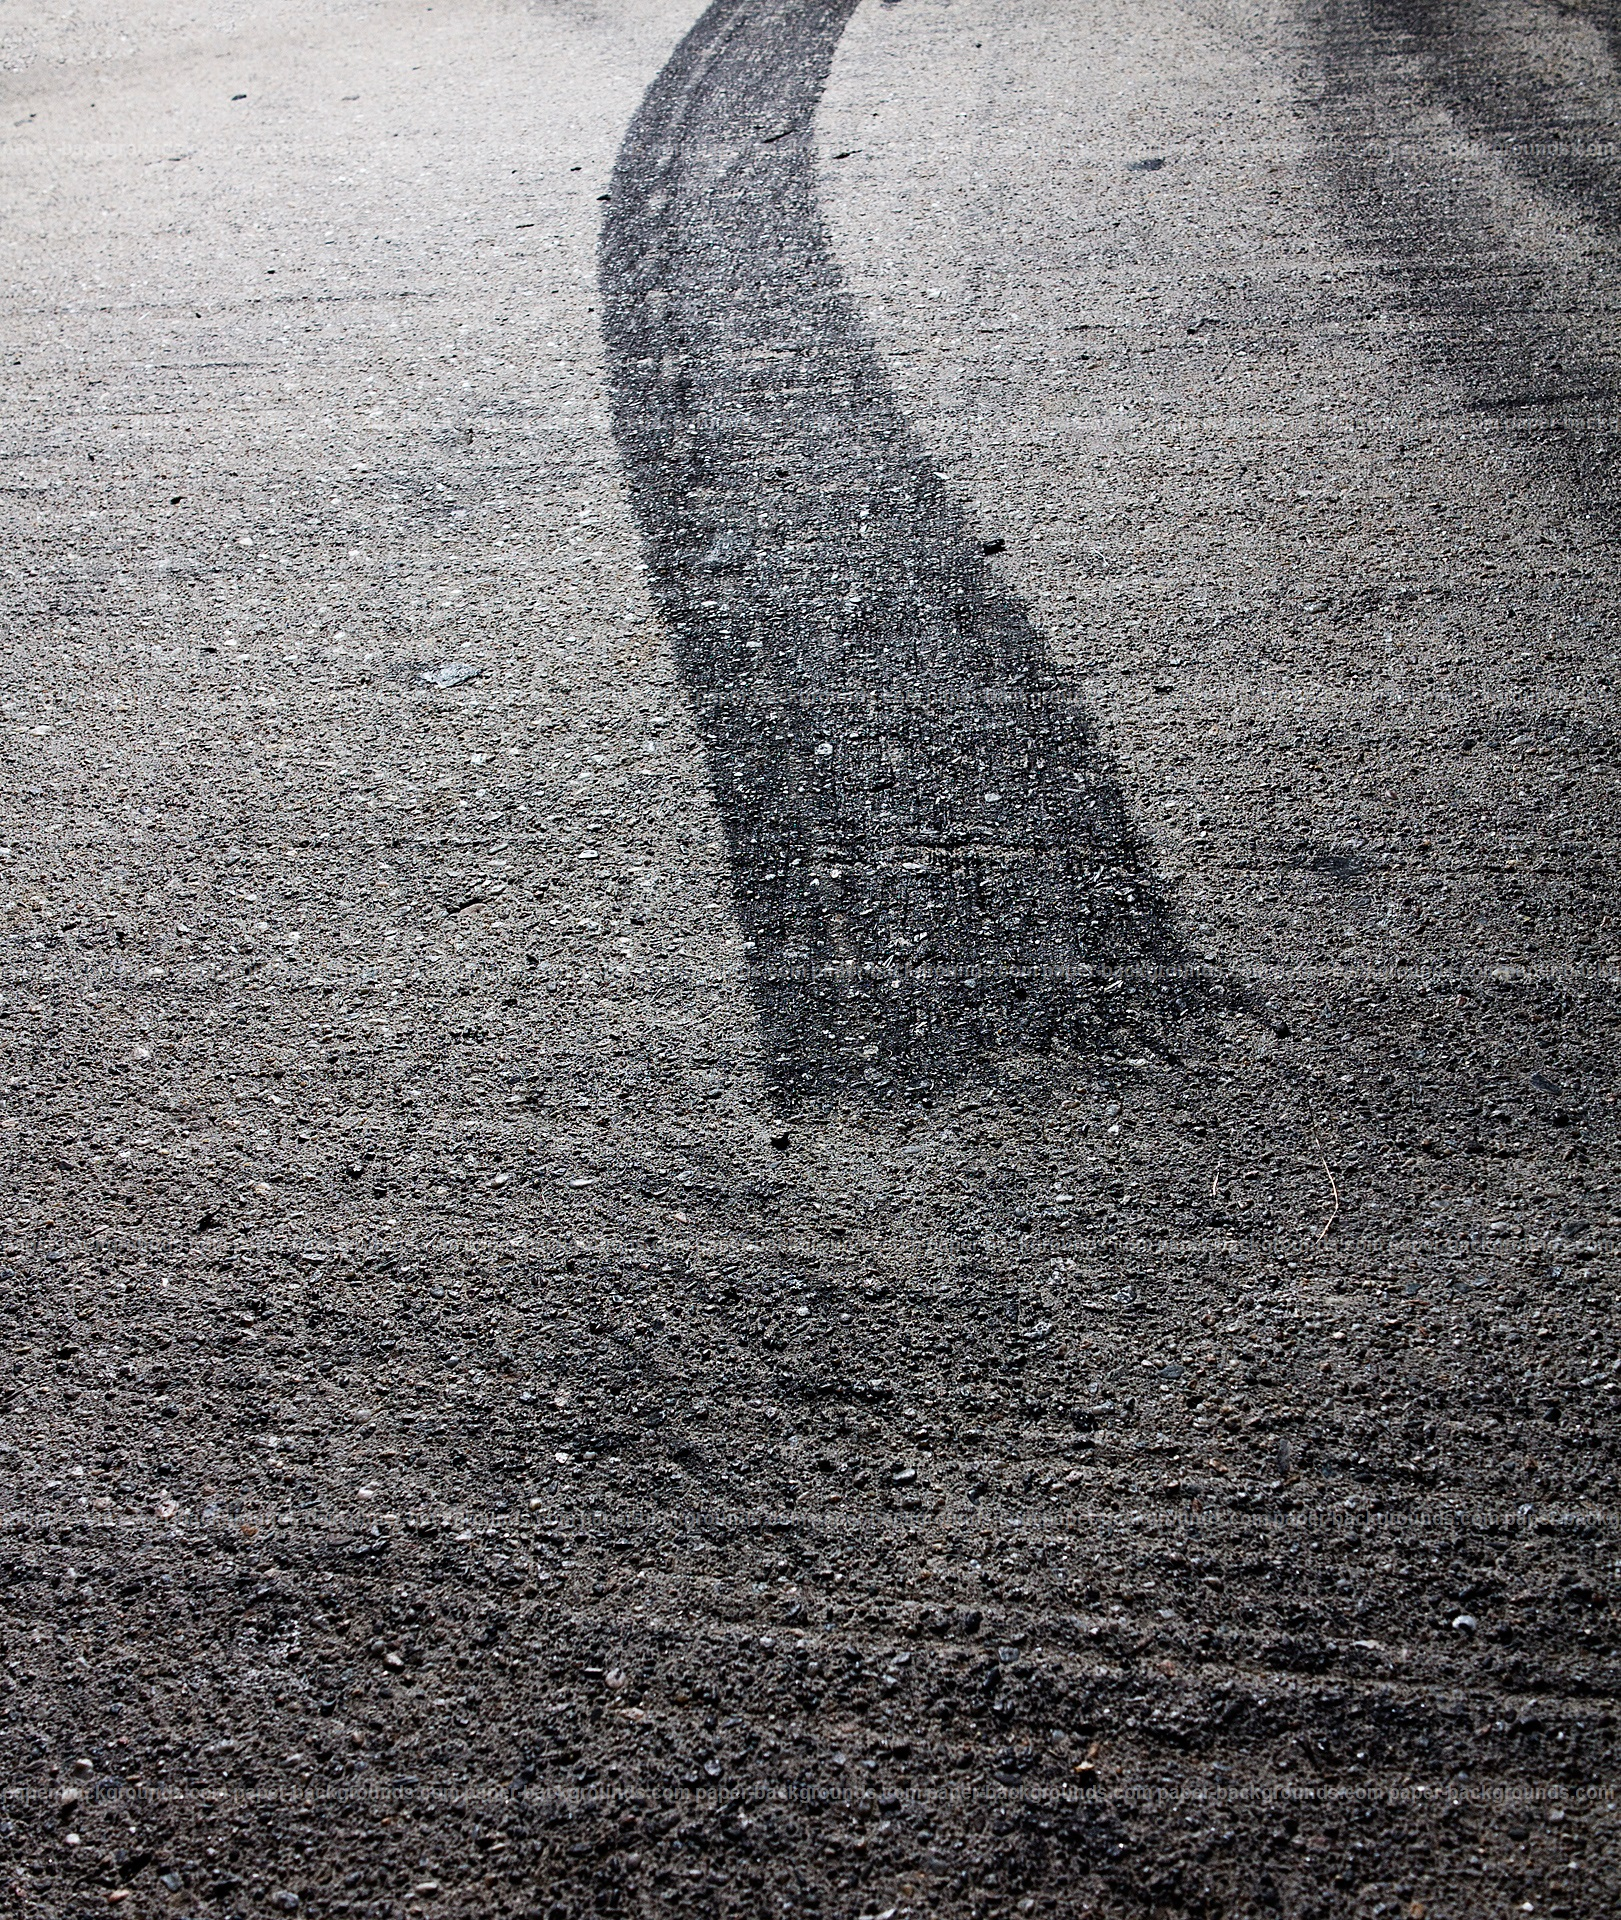 Tarmac Tire Burnout Mark HD